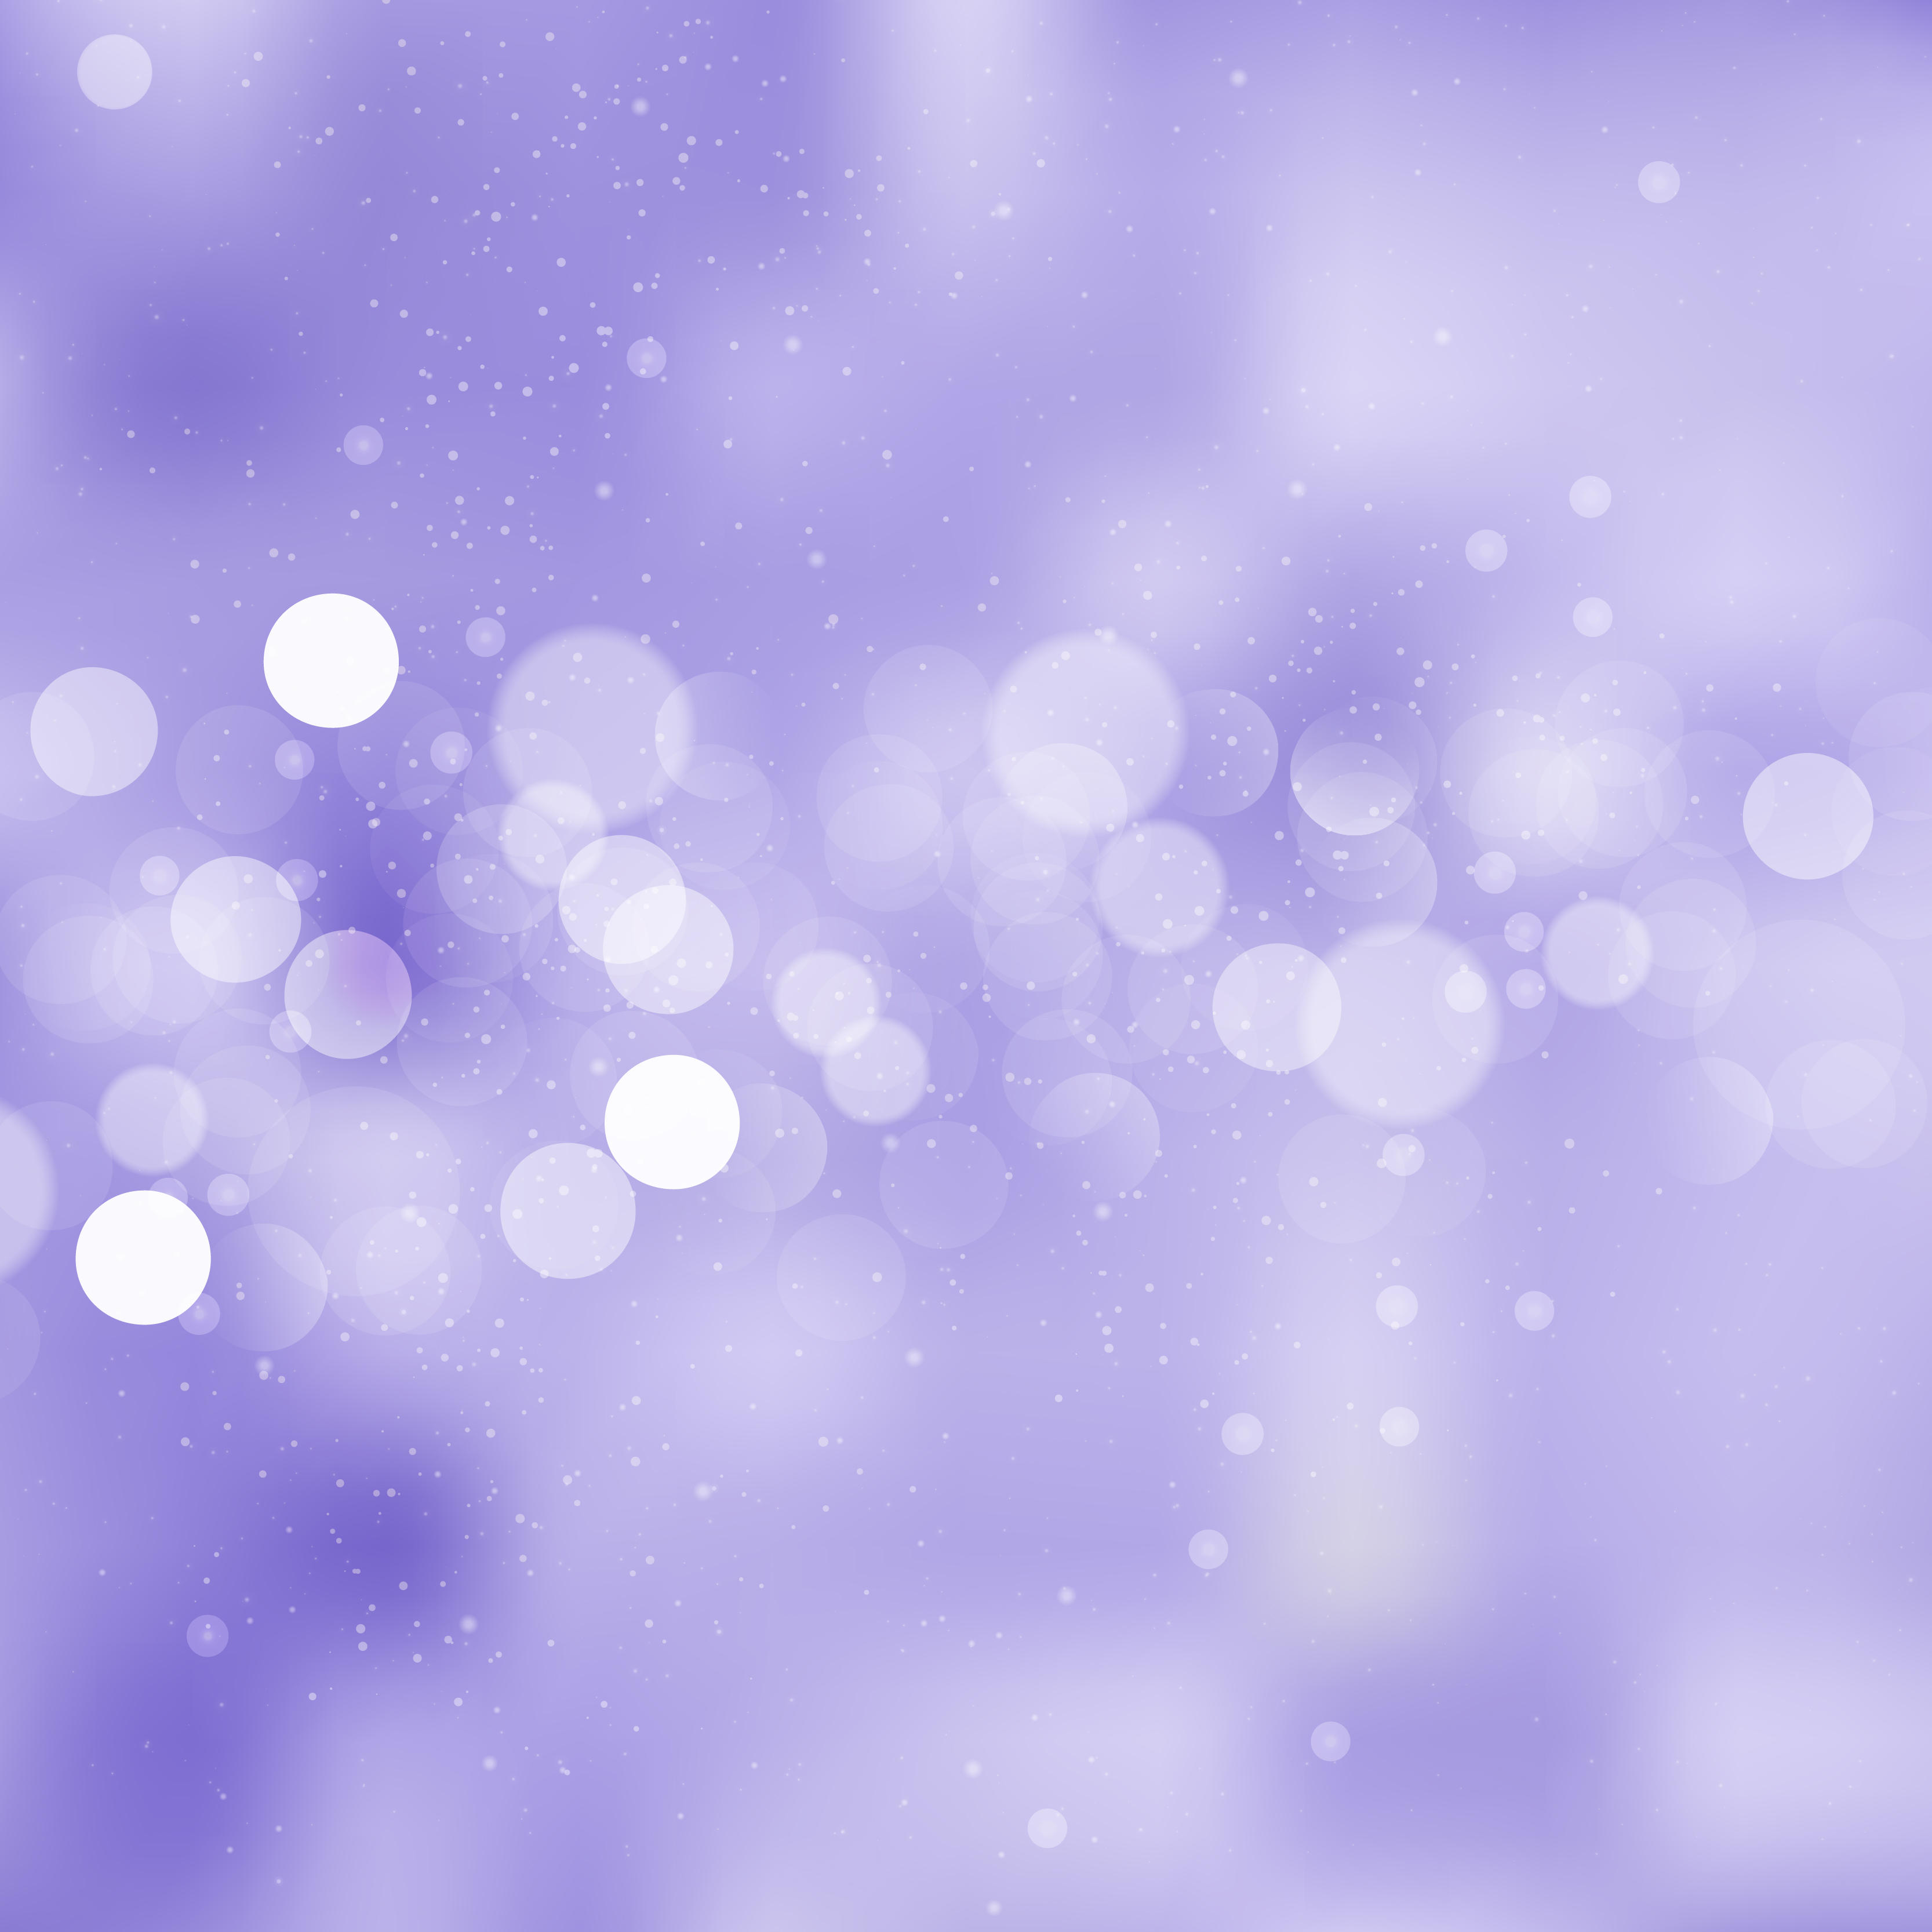 Abstract Light Purple Bokeh Wallpaper